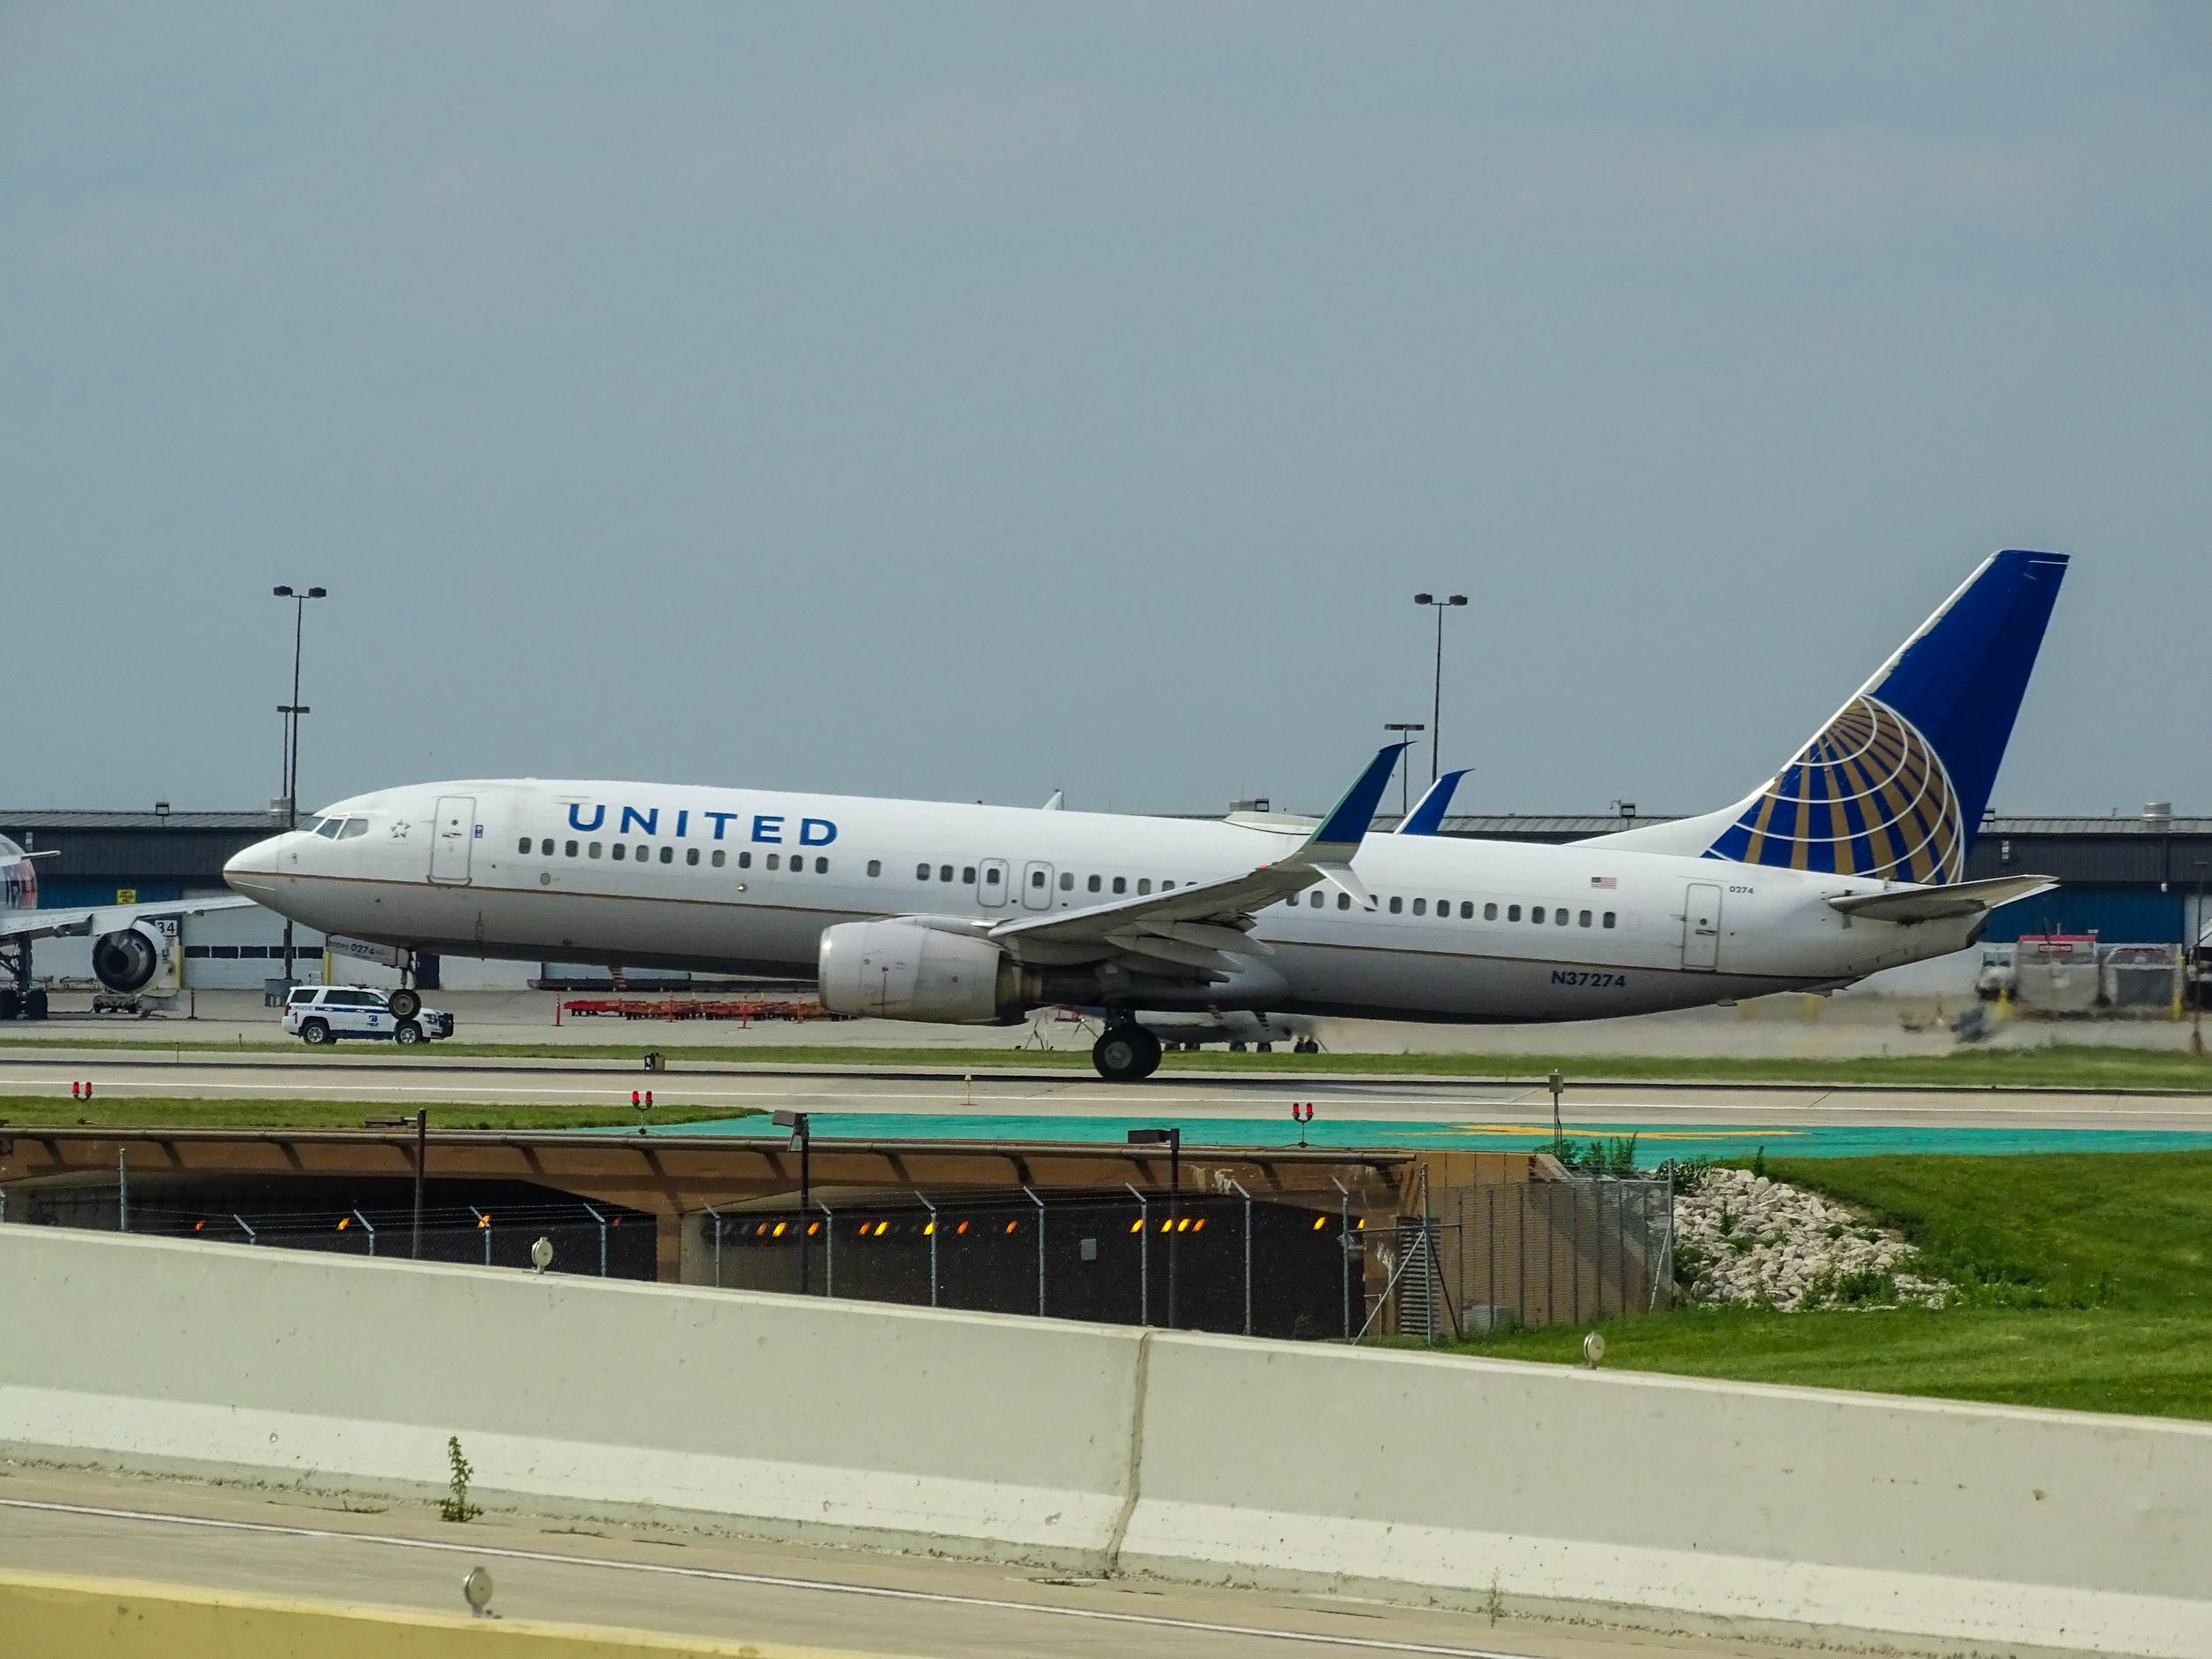 Step by Step Guide on How to Change Flights or Get Refunds on United Airlines